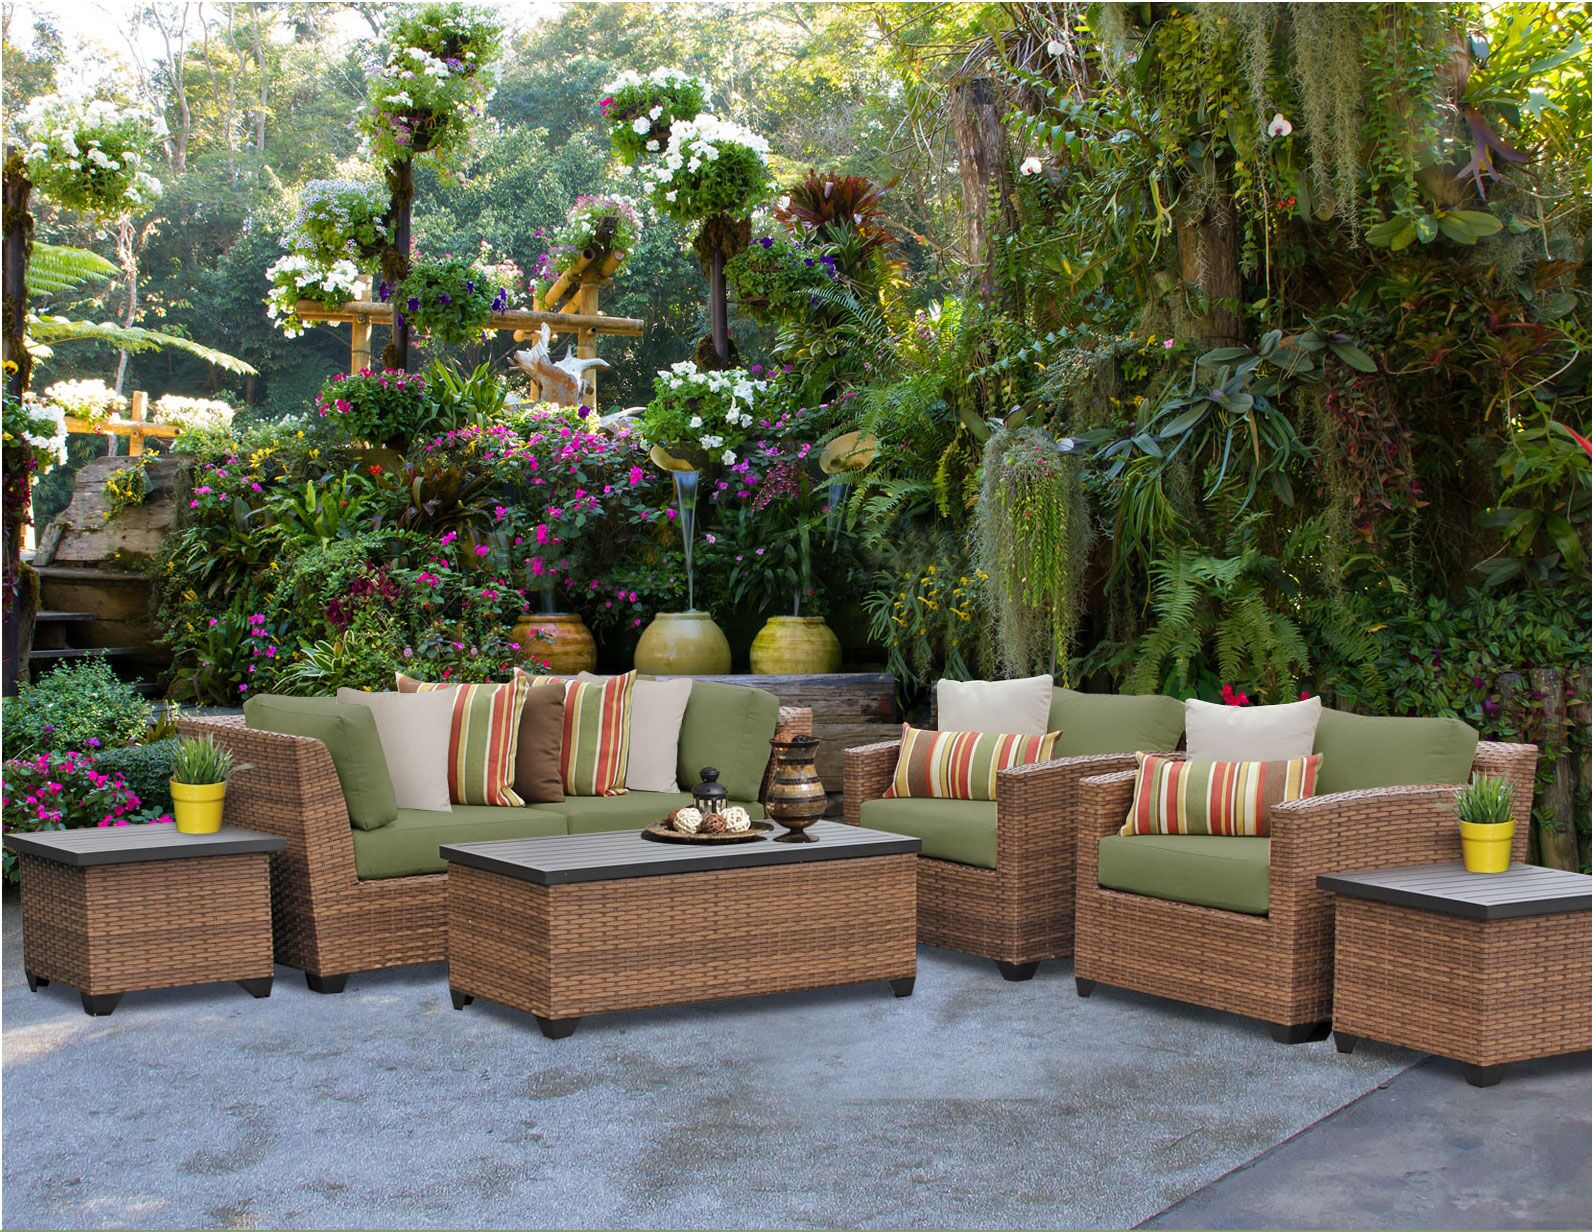 Asellus 7 Piece Rattan Sectional Set with Cushions Color: Cilantro